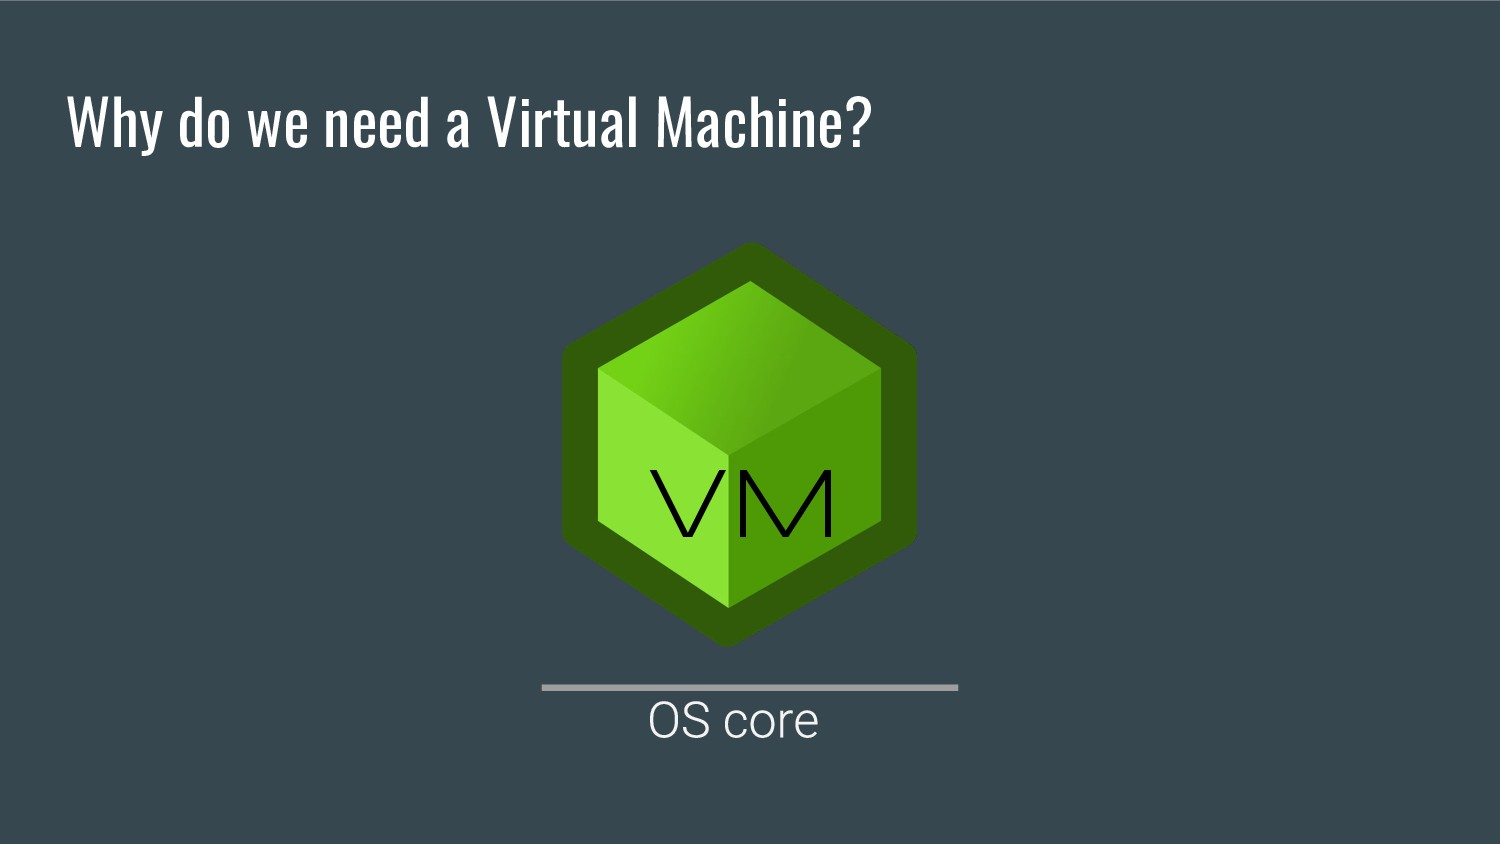 Why do we need a Virtual Machine? VM